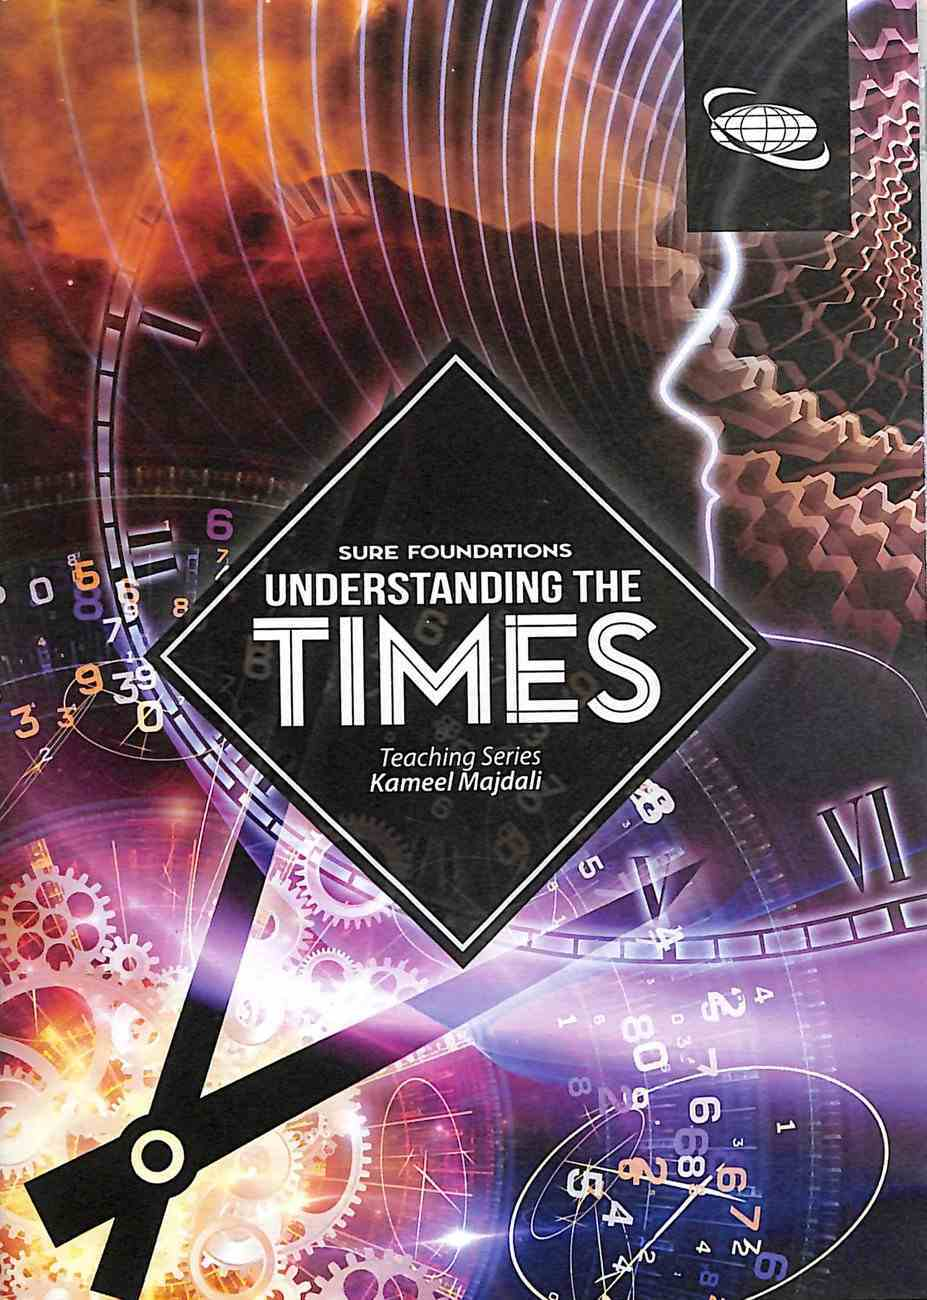 Sure Foundations: Understanding the Times (Last) DVD